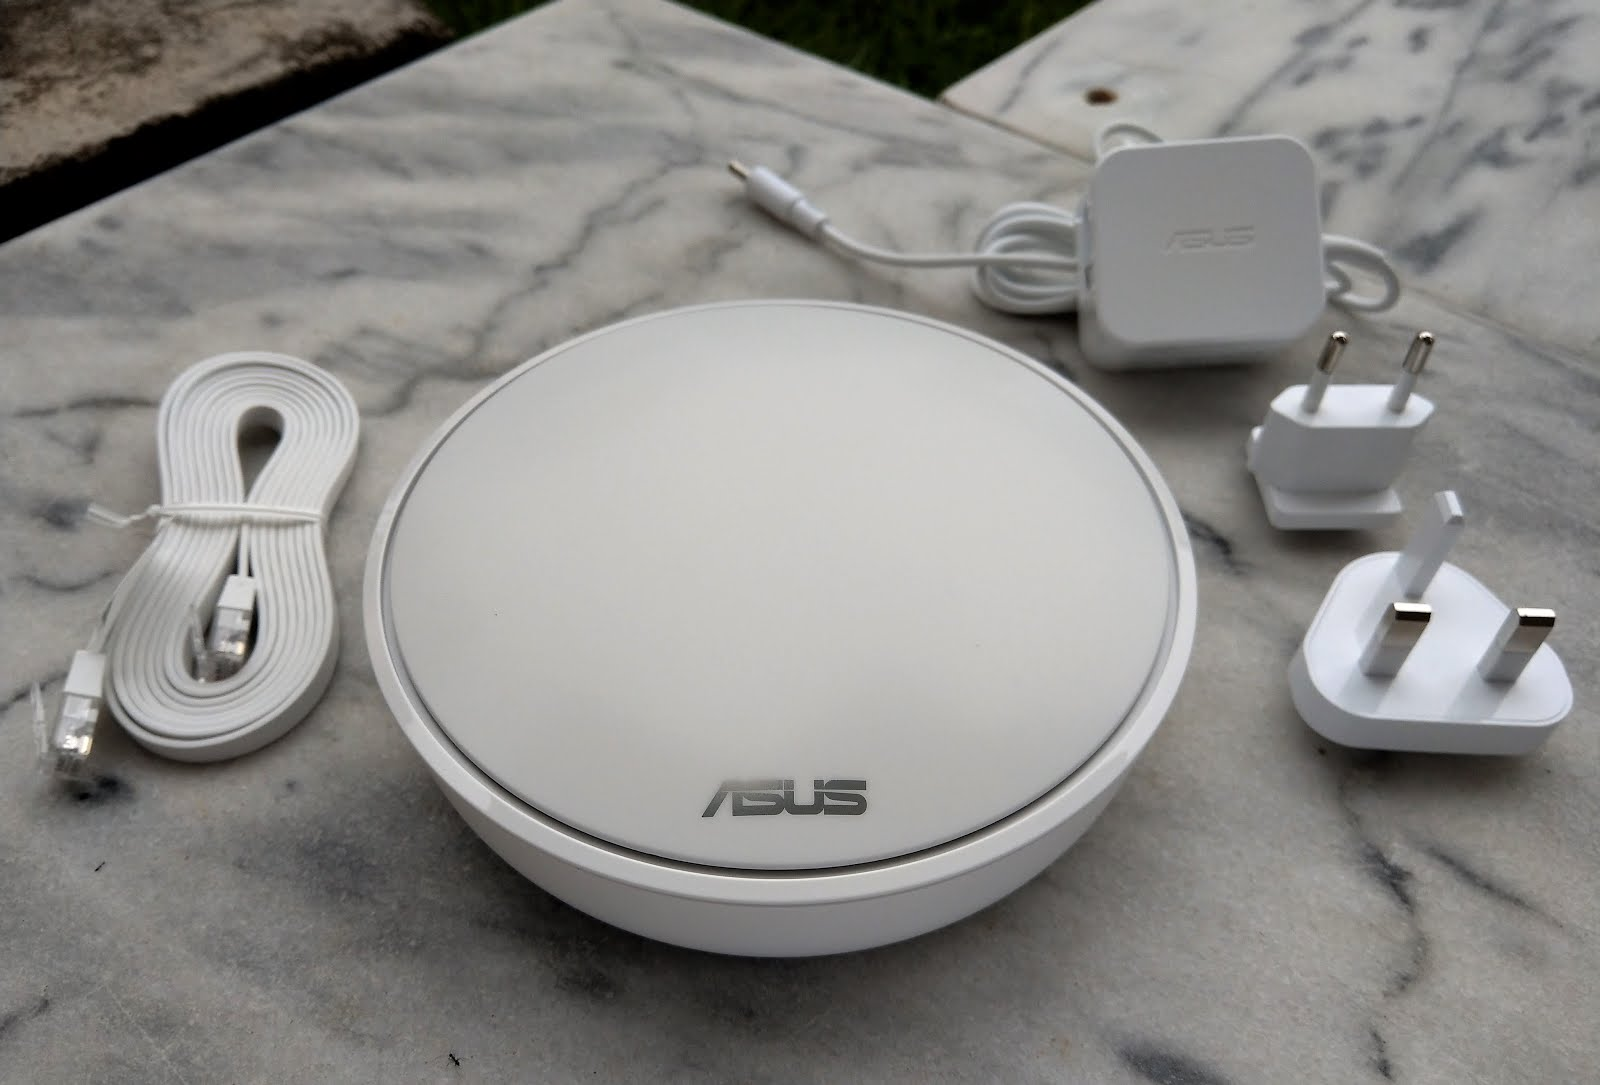 ASUS Lyra Review | Featured-Packed Mesh Network - The Tech